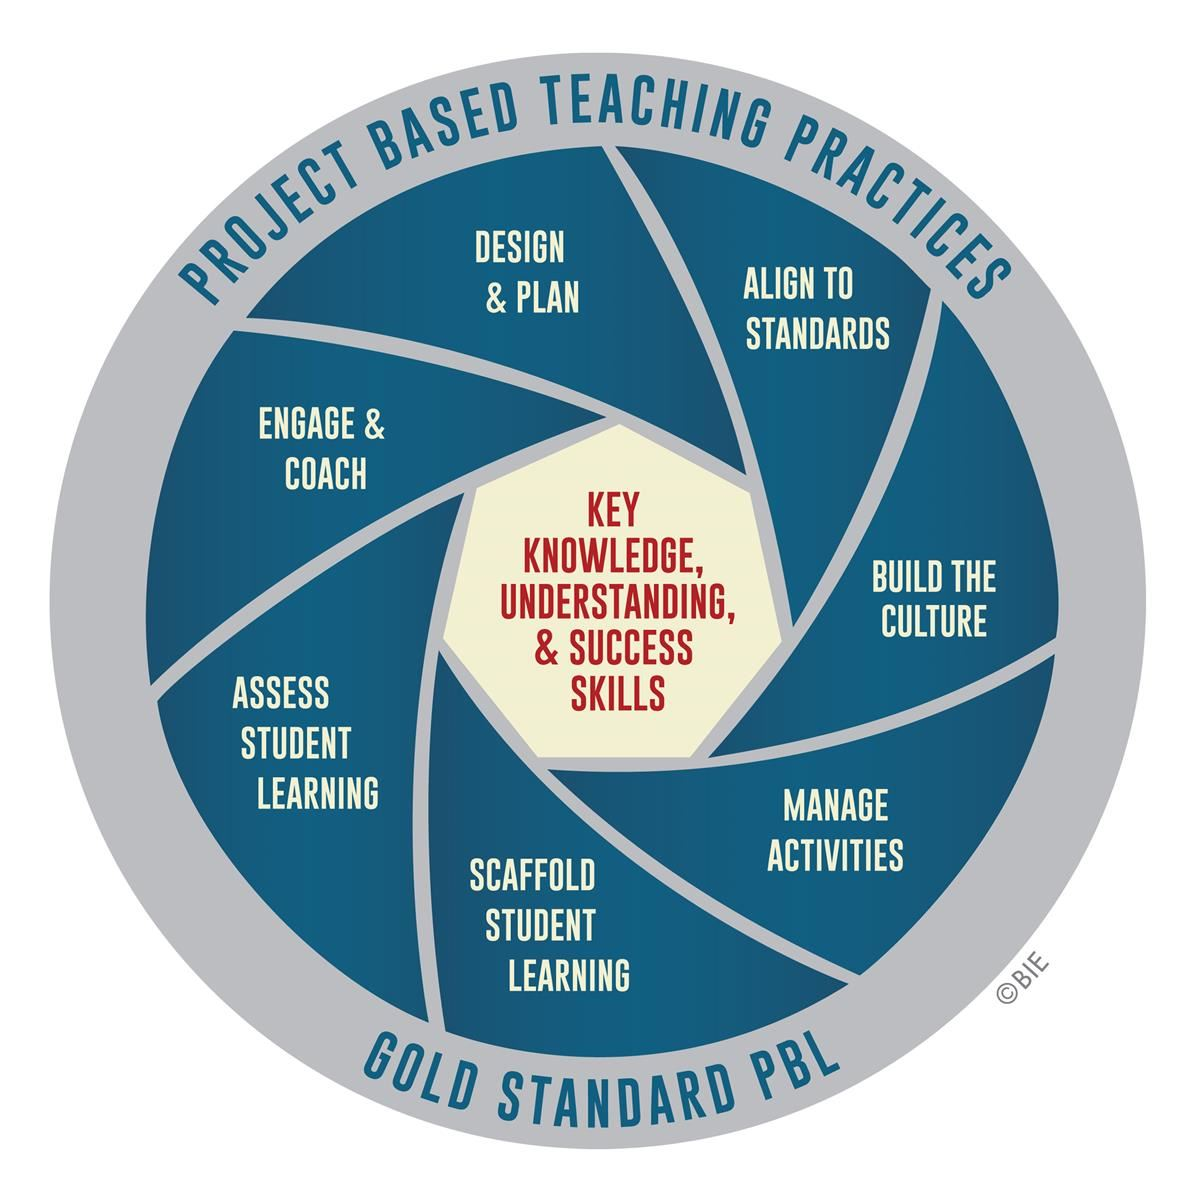 PBL Manage Activities